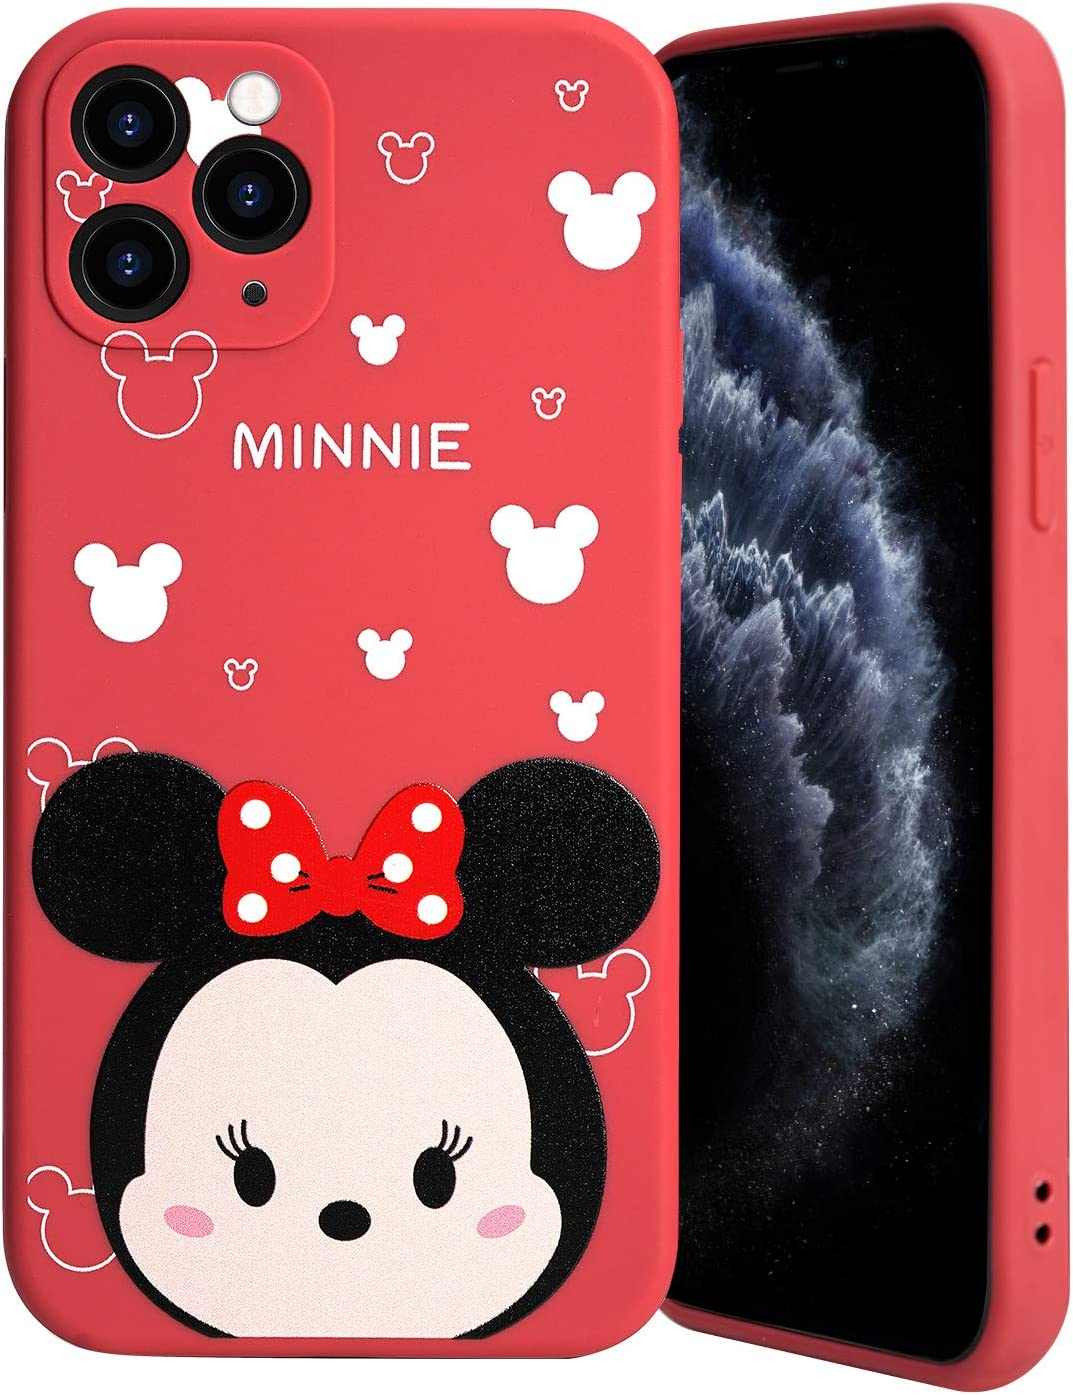 Minnie Character Compatible with iPhone 11 Pro Case, Flexible Rubber Silicone Case Anti-Scratch Slim Design with Bumper Anti-Drop, Street Fashion Minnie Fully Protective Case Cover for iPhone 11 Pro